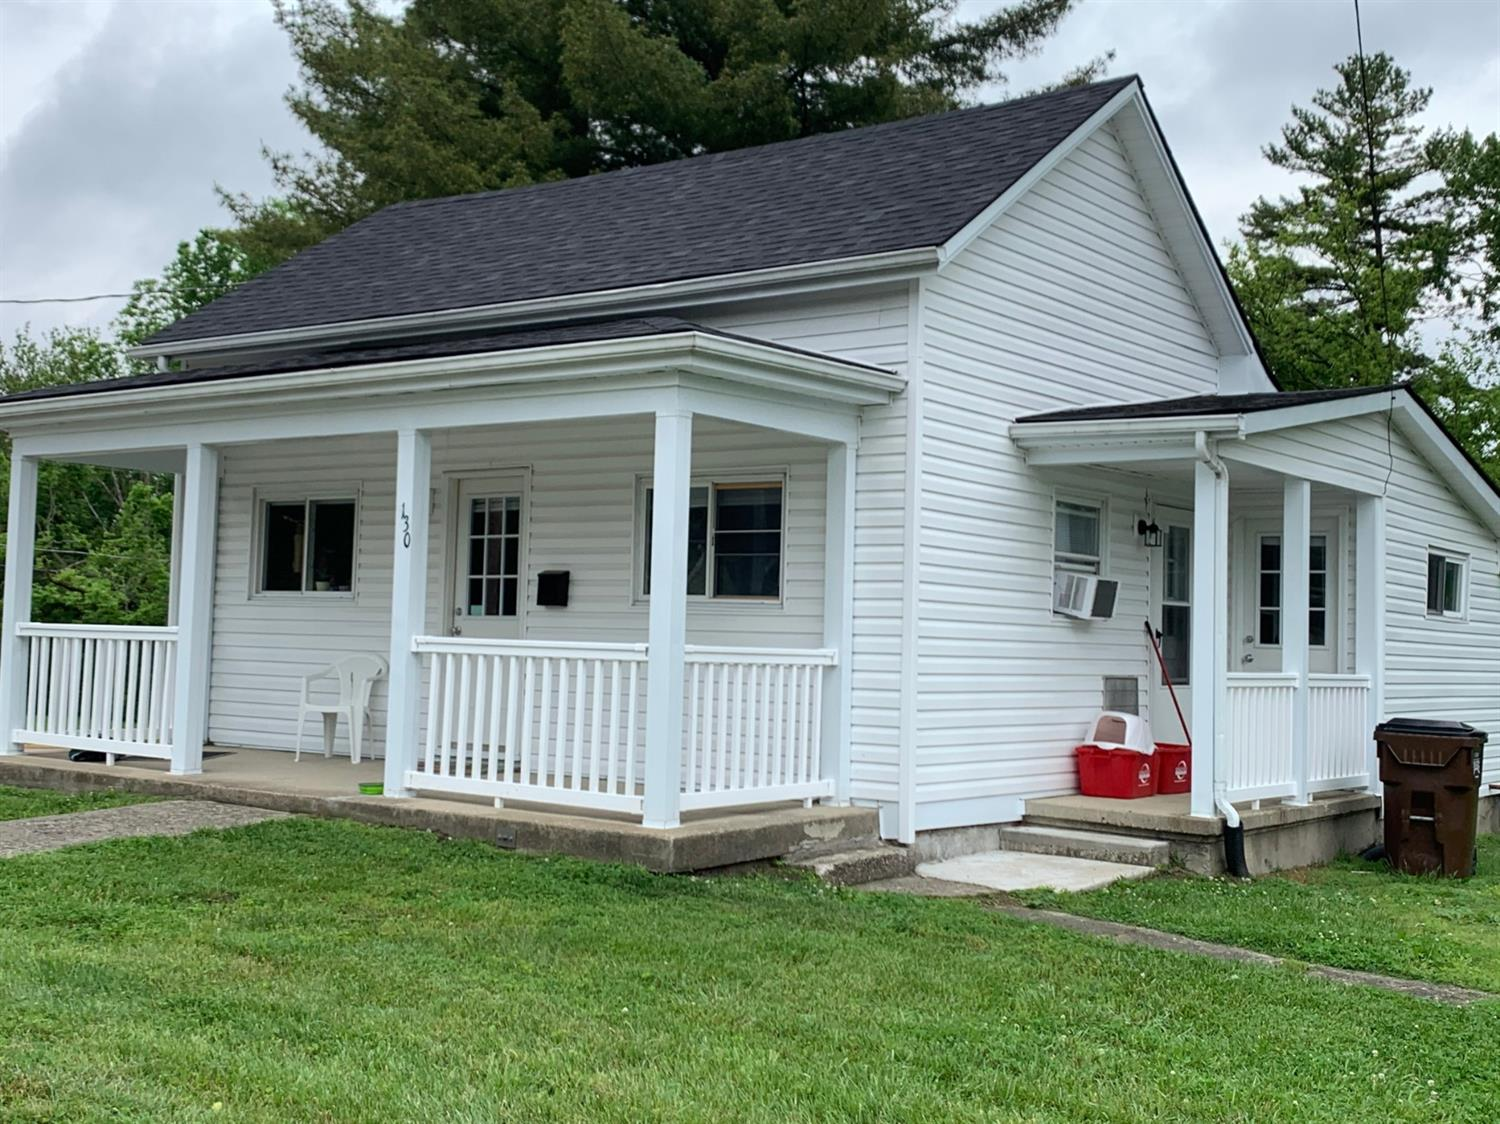 Property for sale at 130 W Sycamore Street, Oxford,  Ohio 45056